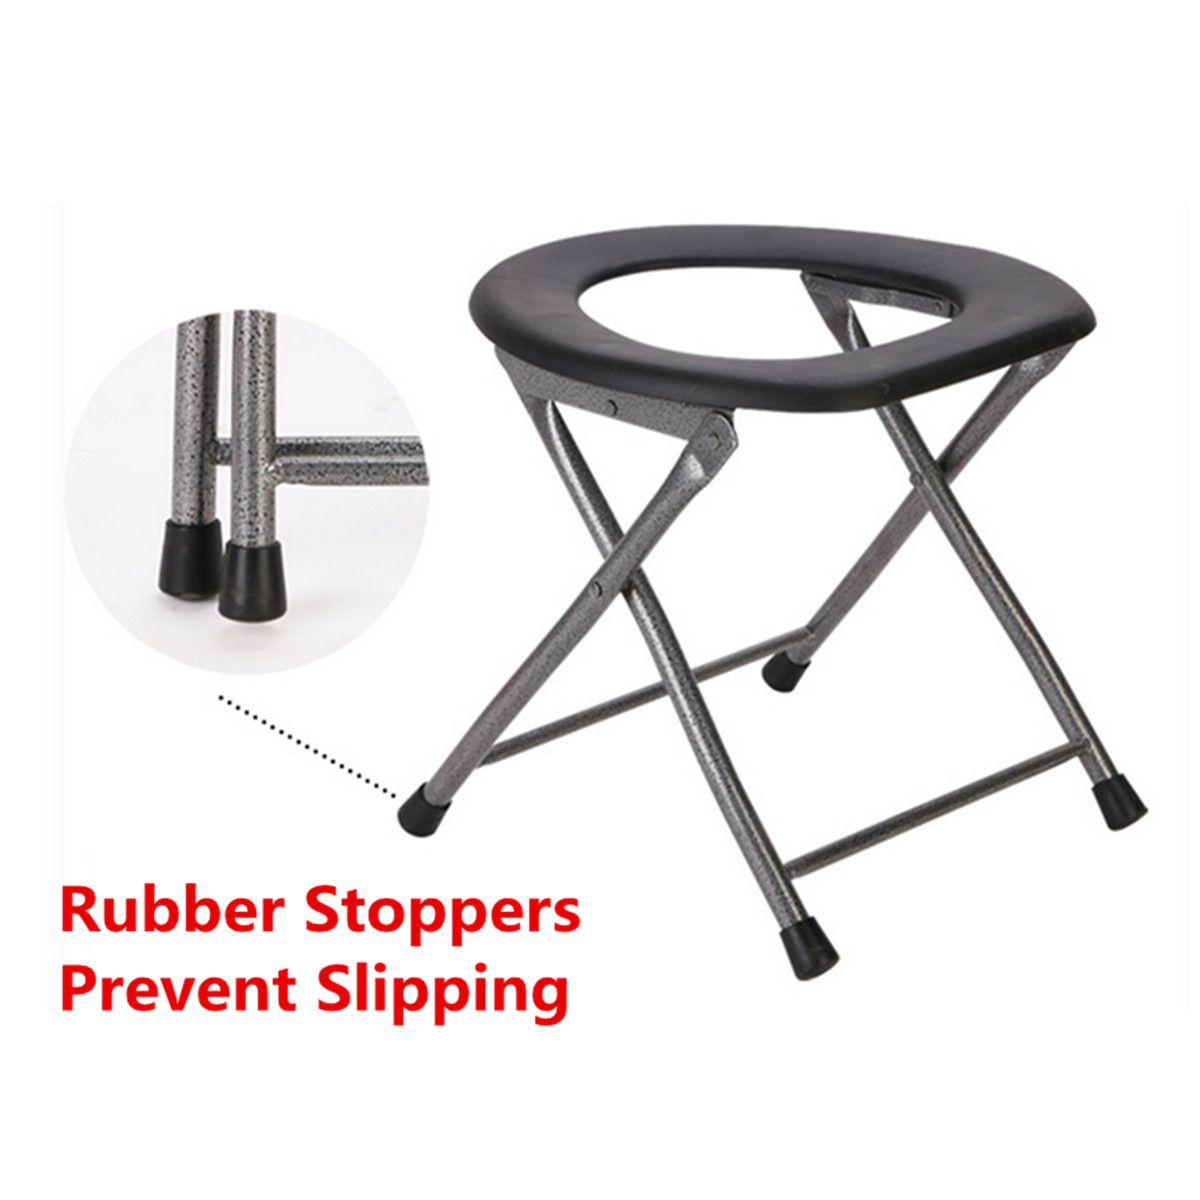 stool chair for toilet lift chairs elderly medicare ipree portable folding old pregnant women sit